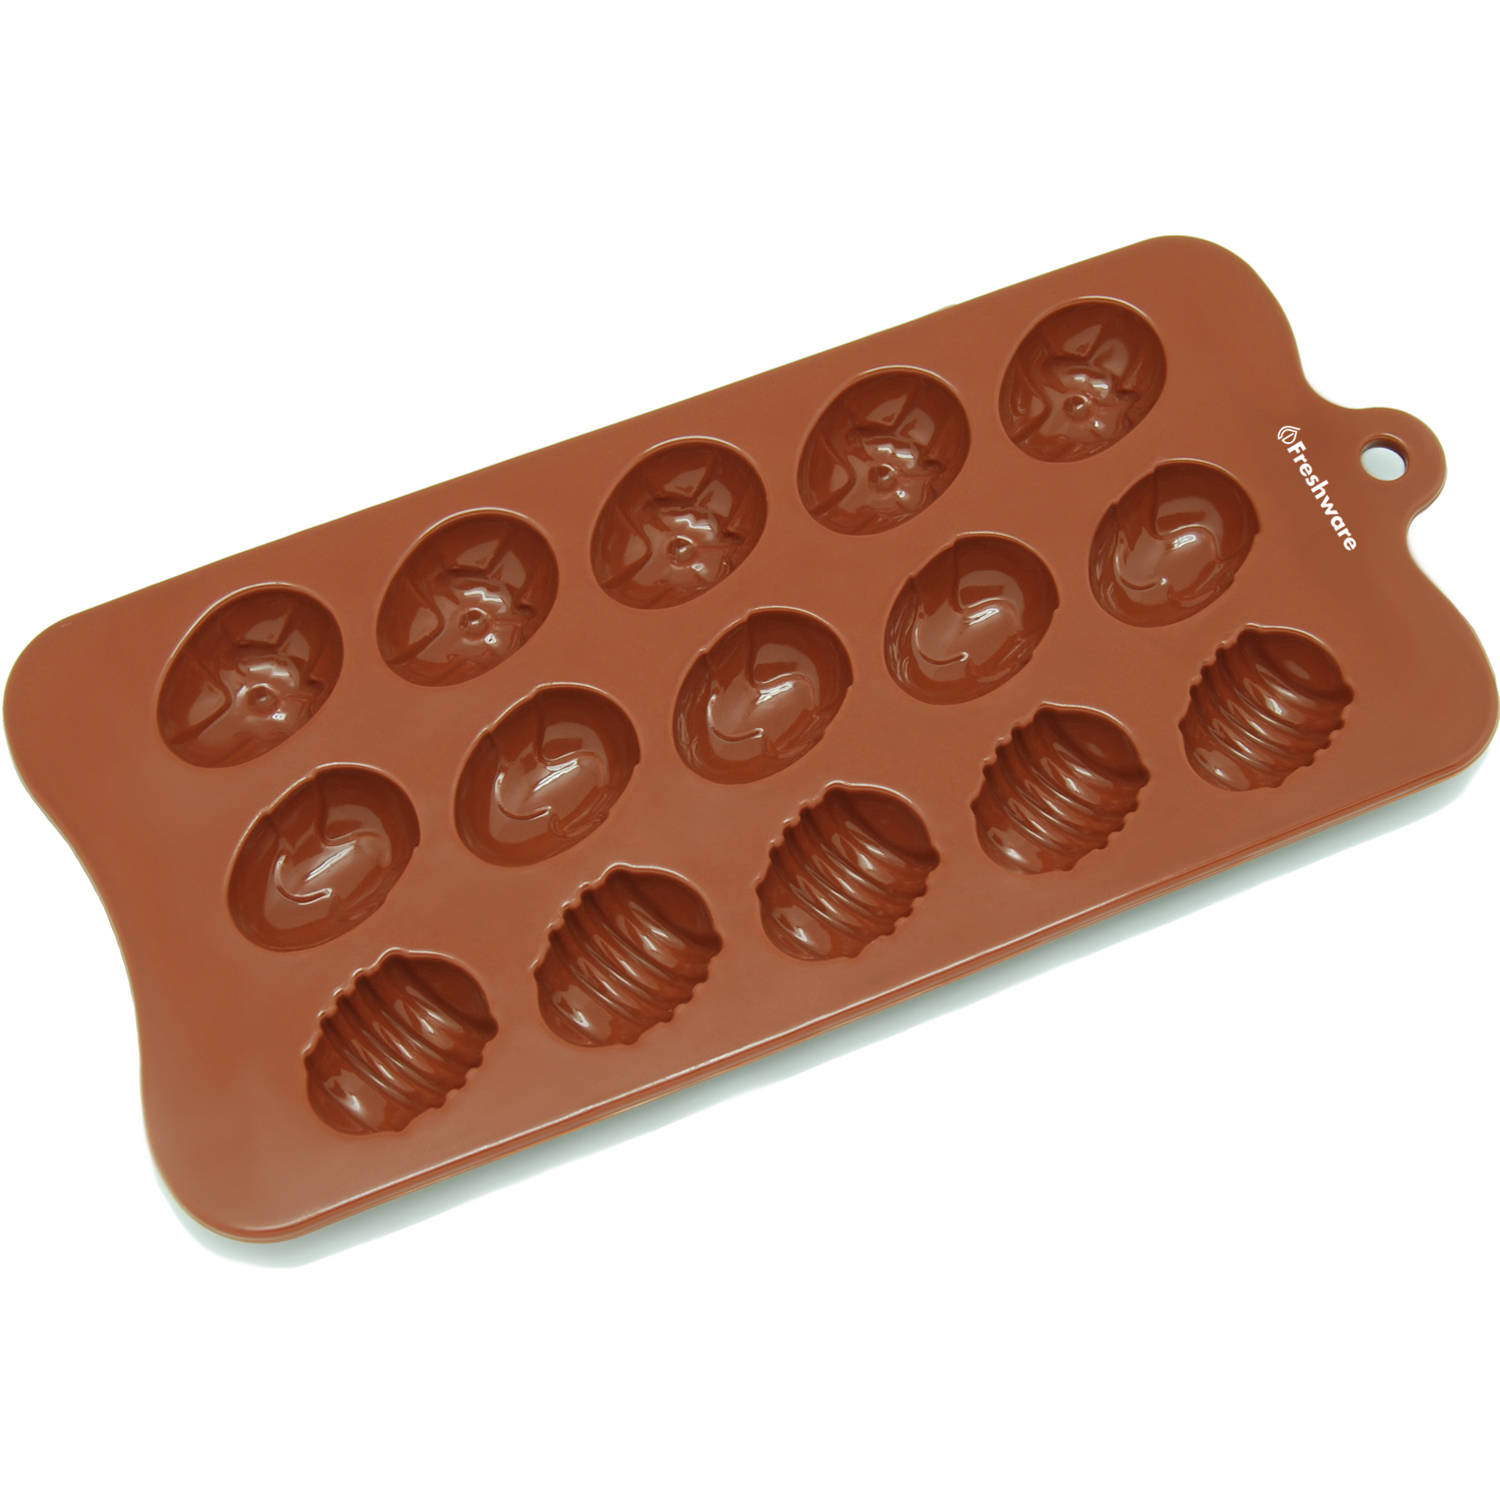 Freshware 15 Cavity Easter Egg Silicone Mold for Chocolate Candy